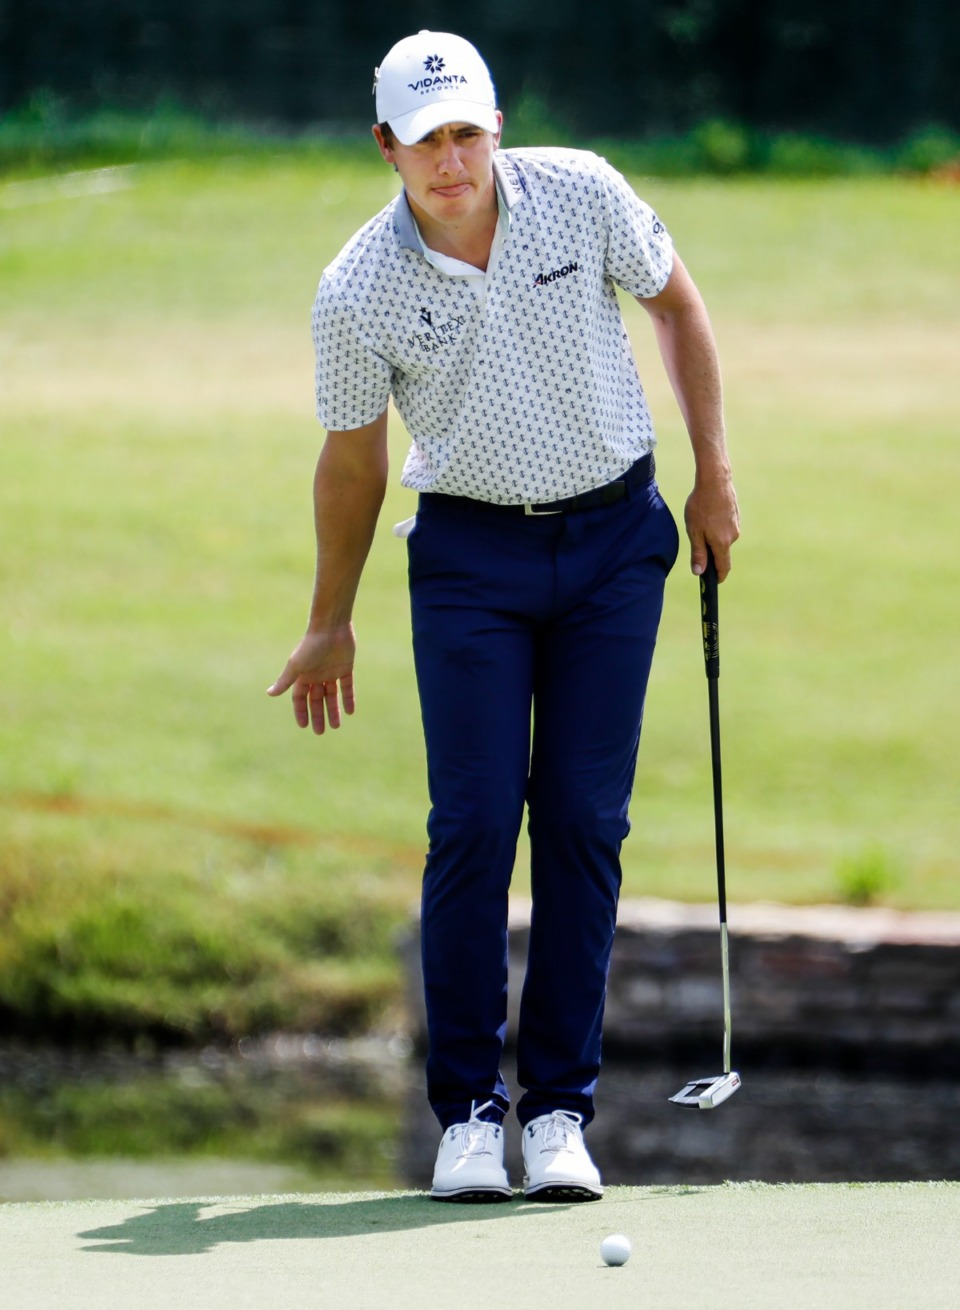 <strong>PGA golfer Carlos Ortiz lines up his putt on the 18th hole green&nbsp;during the first round of the WGC-FedEx St. Jude Invitational on Thursday, Aug. 5, 2021, at TPC Southwind.</strong> (Mark Weber/The Daily Memphian)